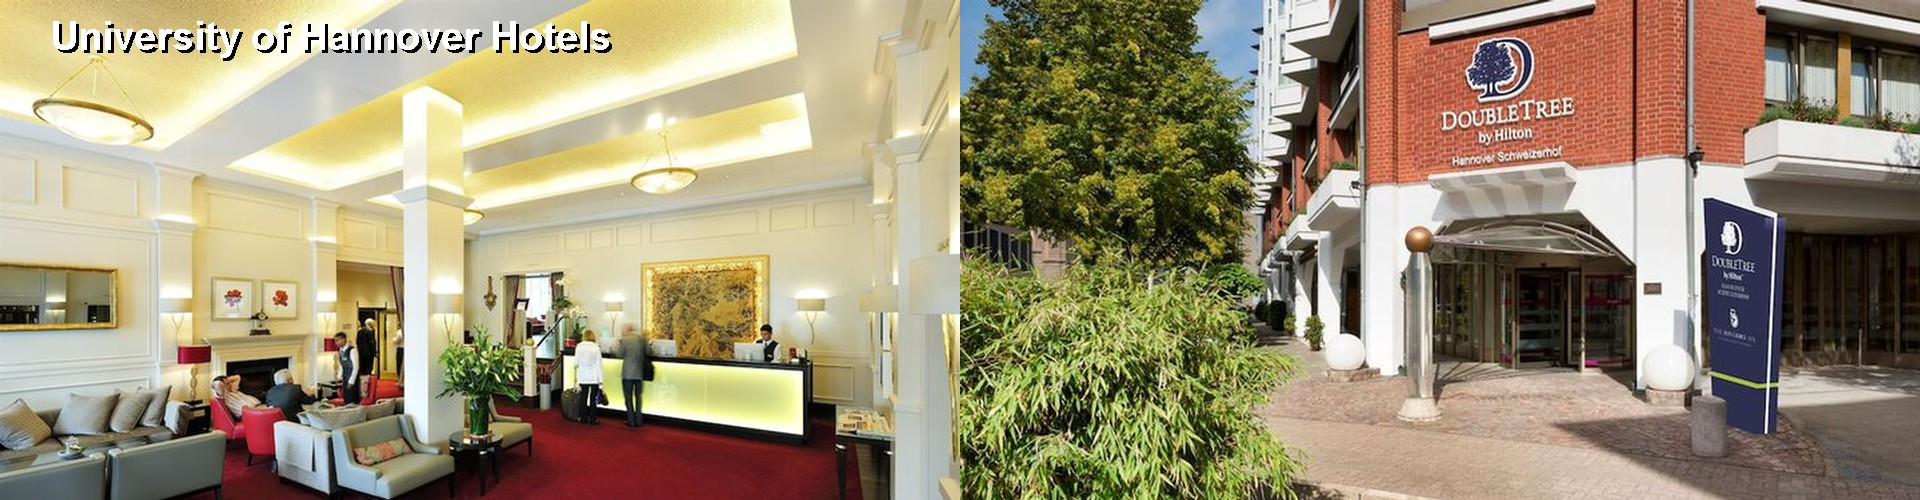 5 Best Hotels near University of Hannover